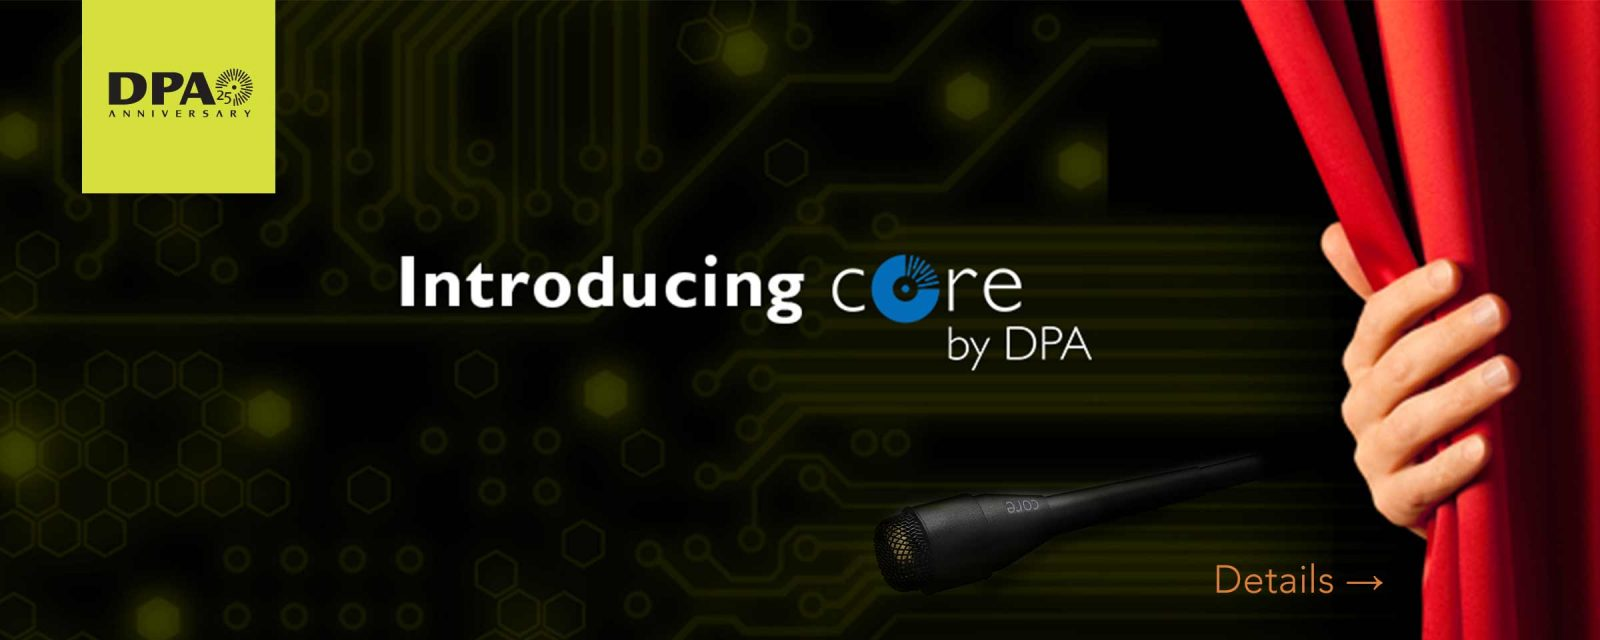 Introducing DPA CORE Technology